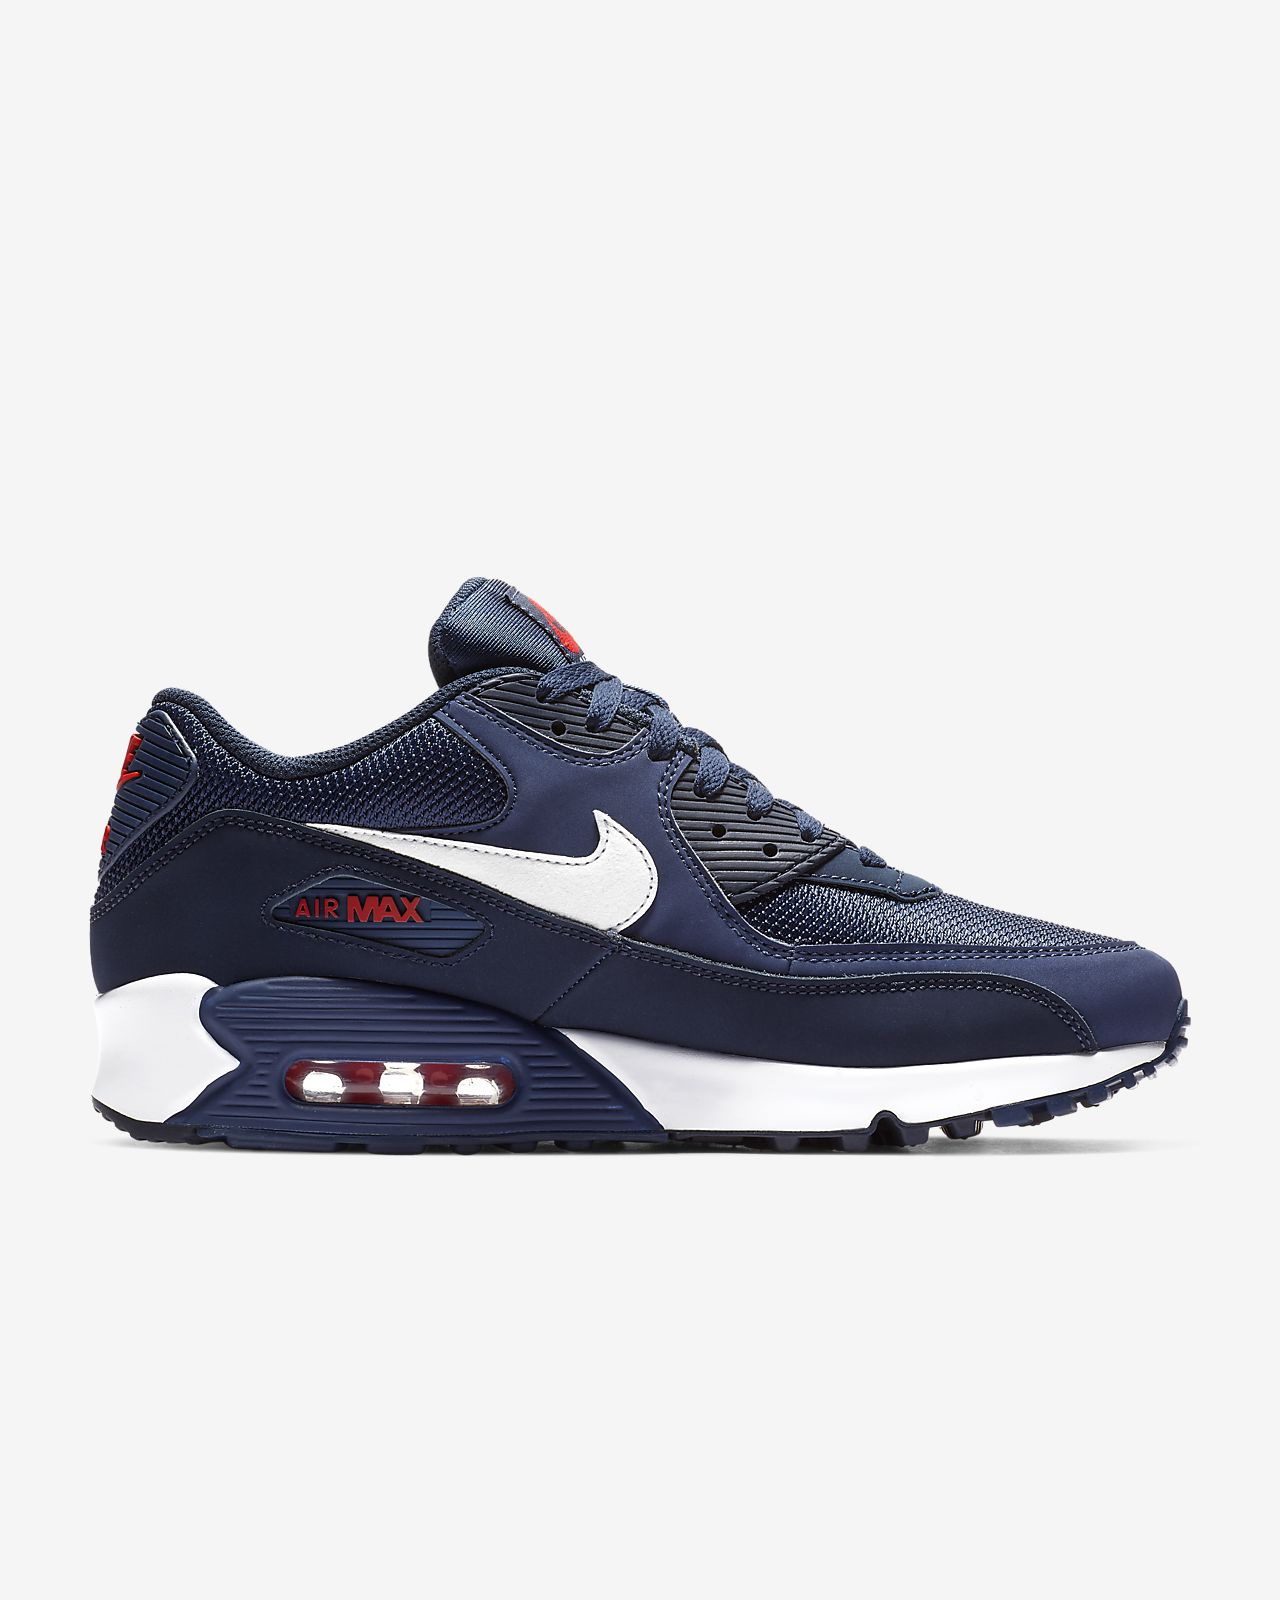 new products 84d0b a80e5 ... Nike Air Max 90 Essential Mens Shoe